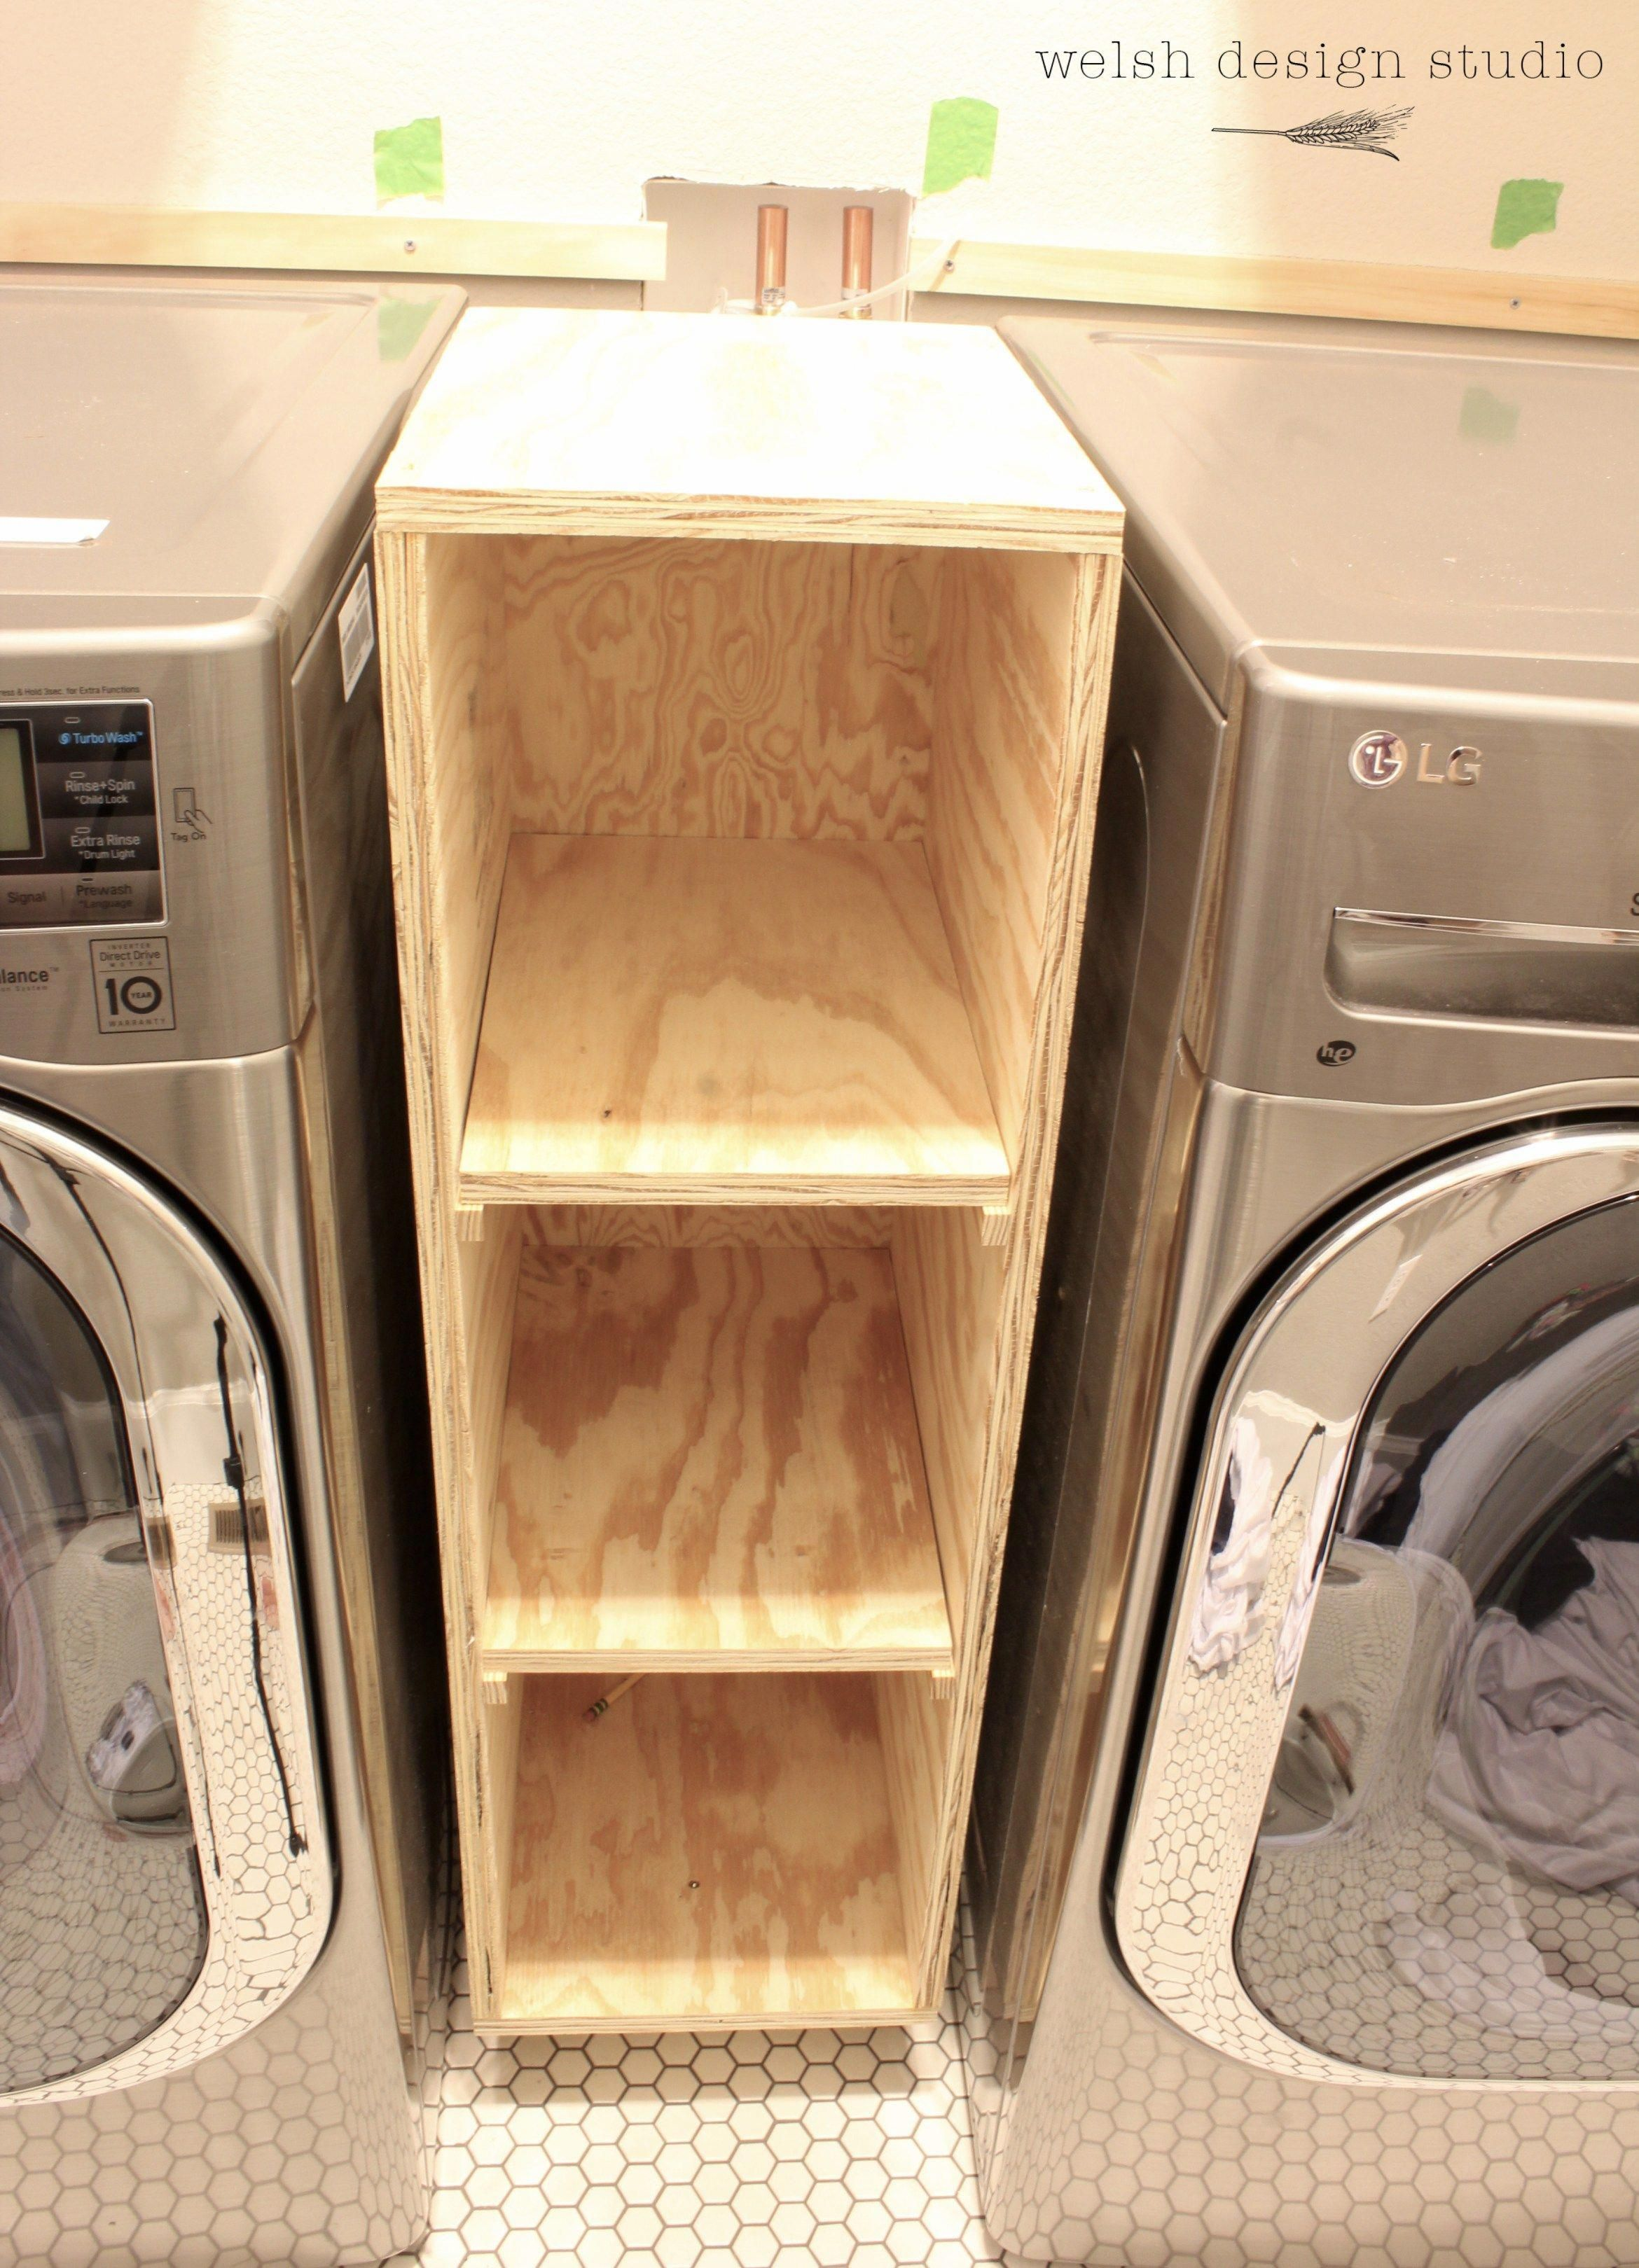 Check Out Our Internet Site For More Info On Laundry Room Storage Diy Cabinets Laundry Room Diy Small Laundry Room Organization Laundry Room Storage Shelves